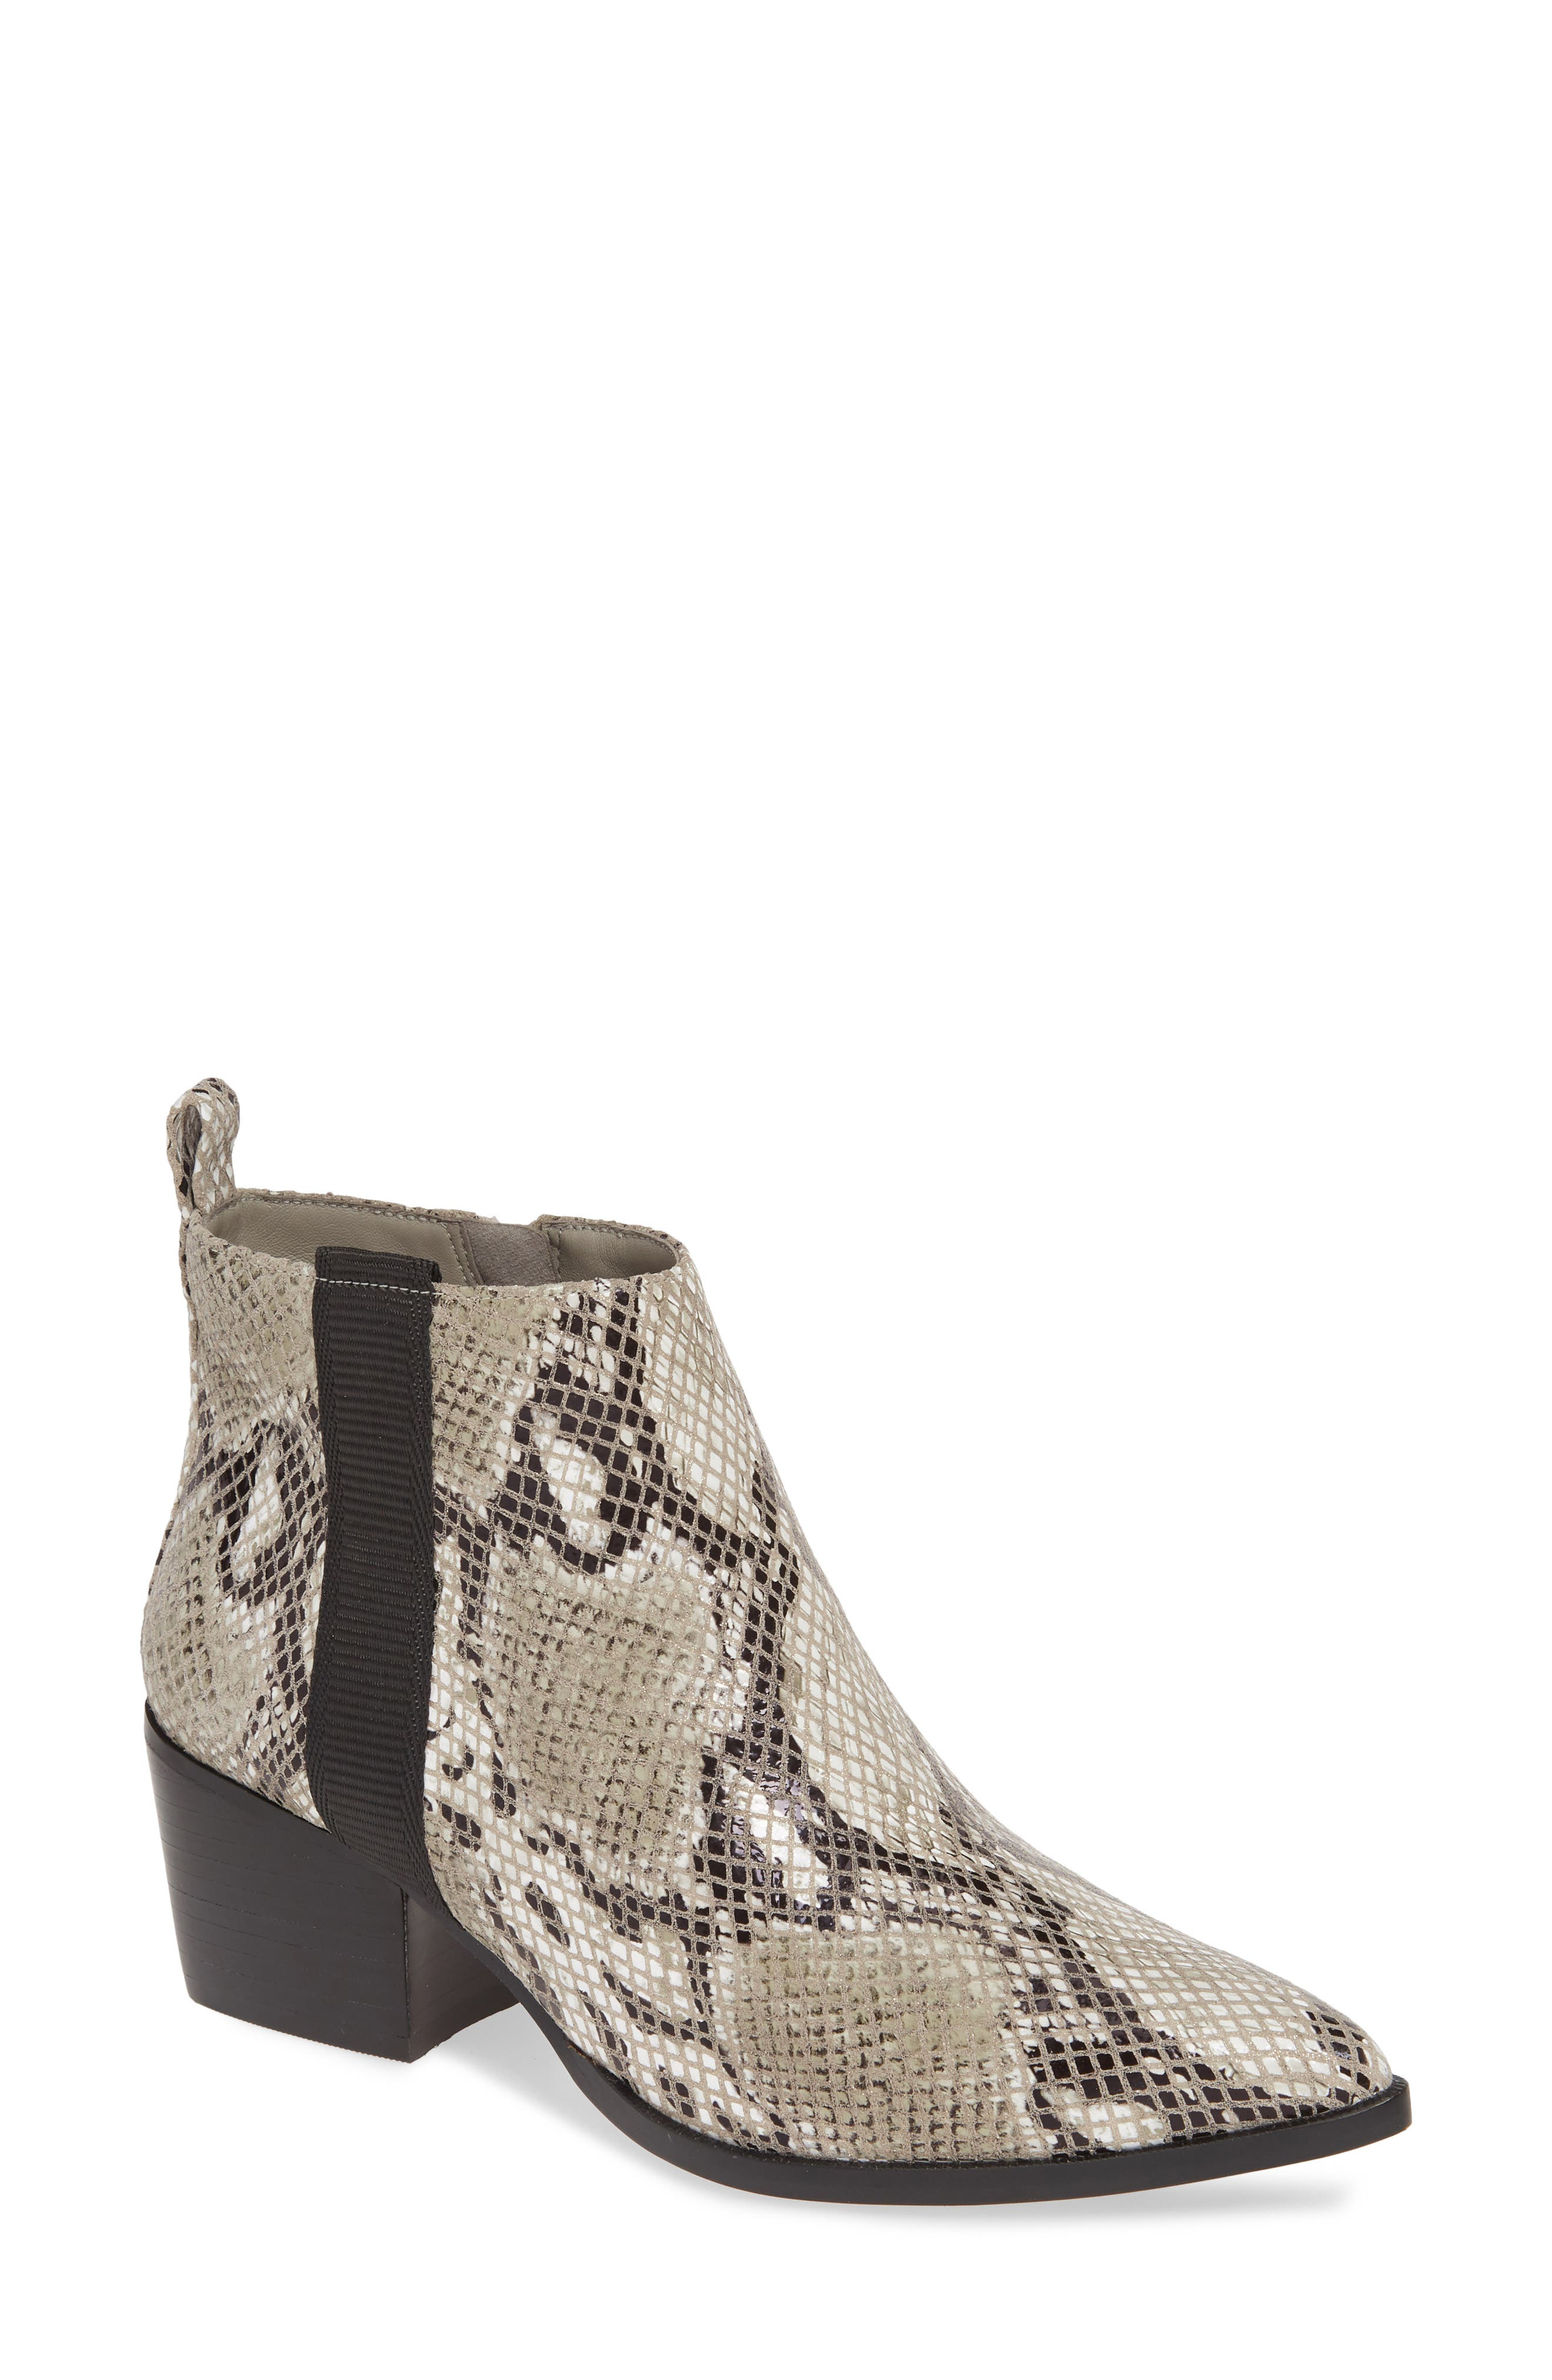 Trend-right snakeskin embossing and grosgrain-ribbon detailing bring scene-stealing appeal to a Western-inspired bootie in a pointy-toe silhouette. Style Name: Linea Paolo Sevilla Ii Bootie (Women). Style Number: 5824847. Available in stores.